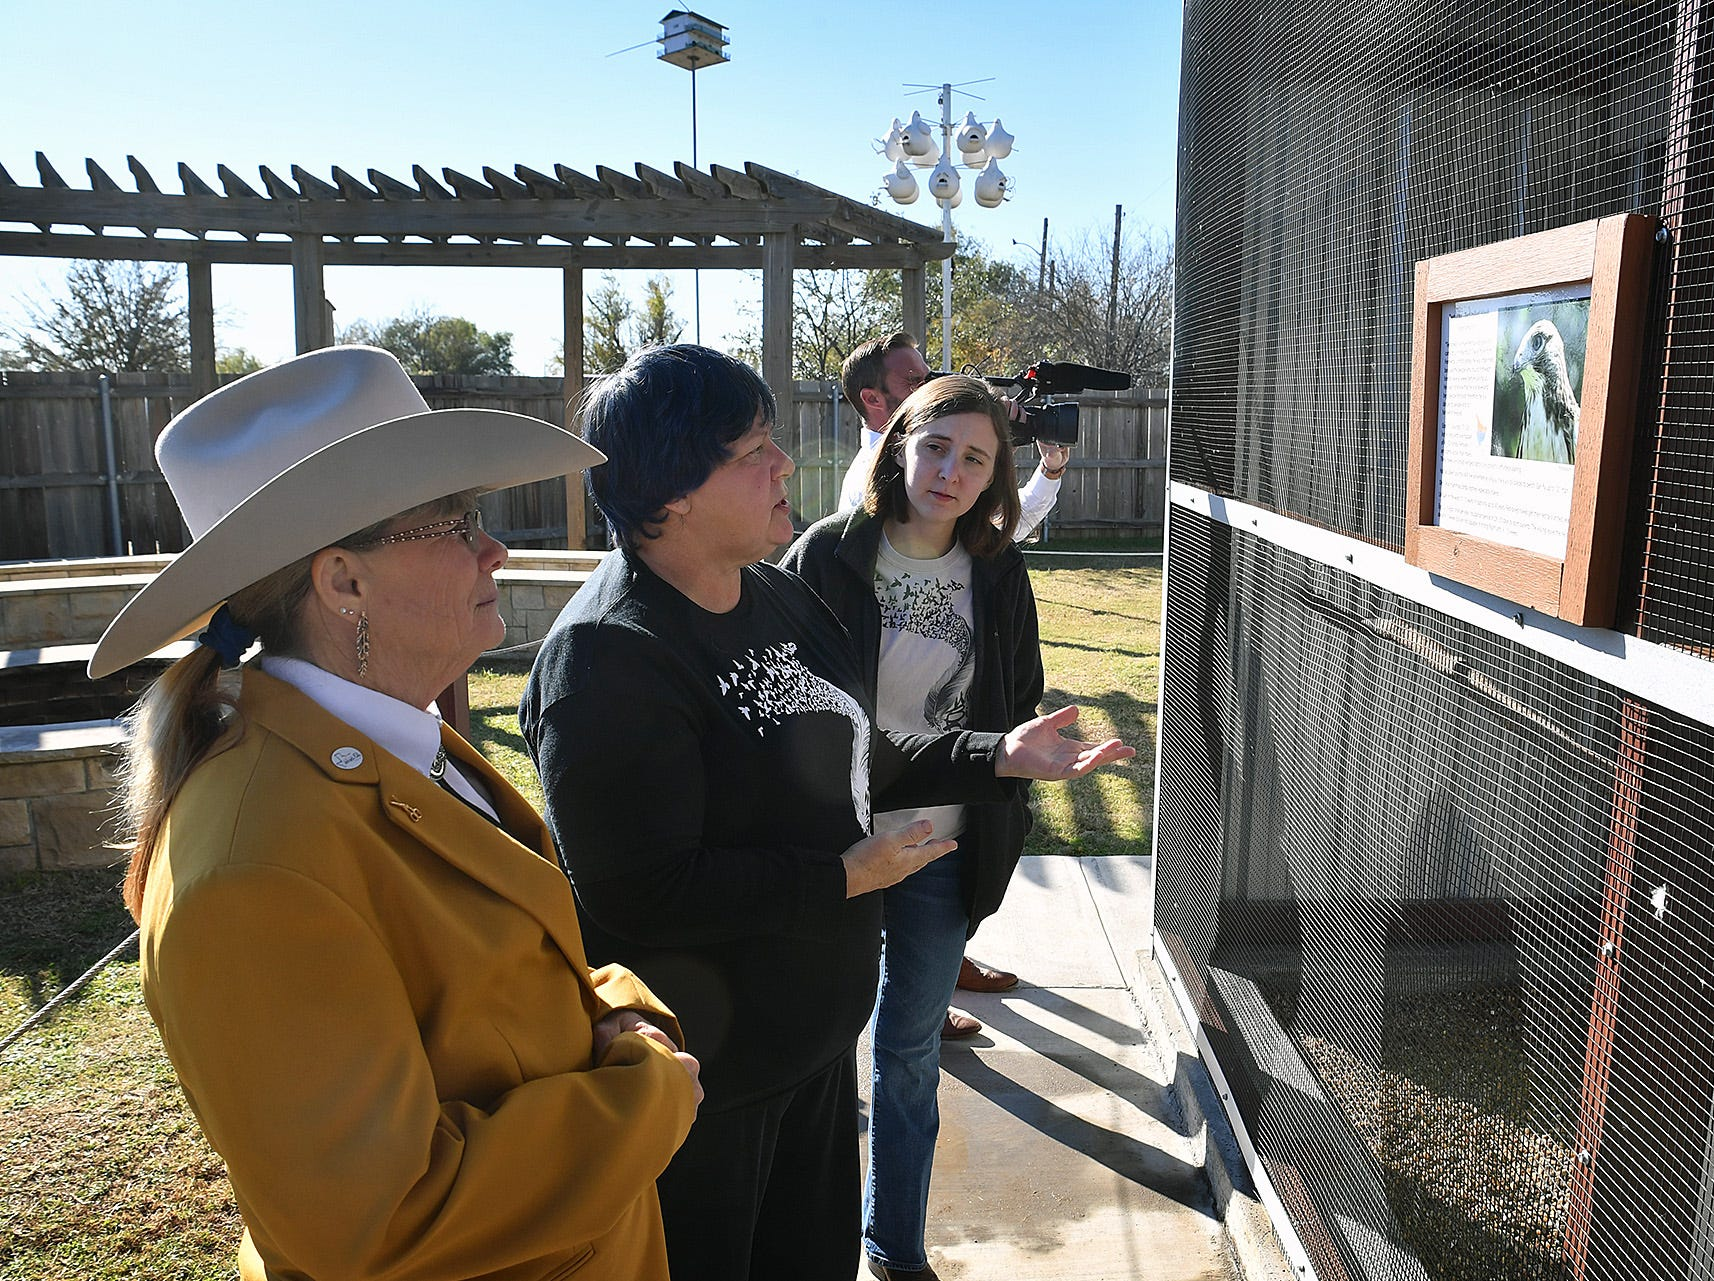 Kathy Richardson, left, tours the new Exhibit and Education building with Connie Palkowetz and Hannah Baer, right, of Wild Bird Rescue Thursday morning.